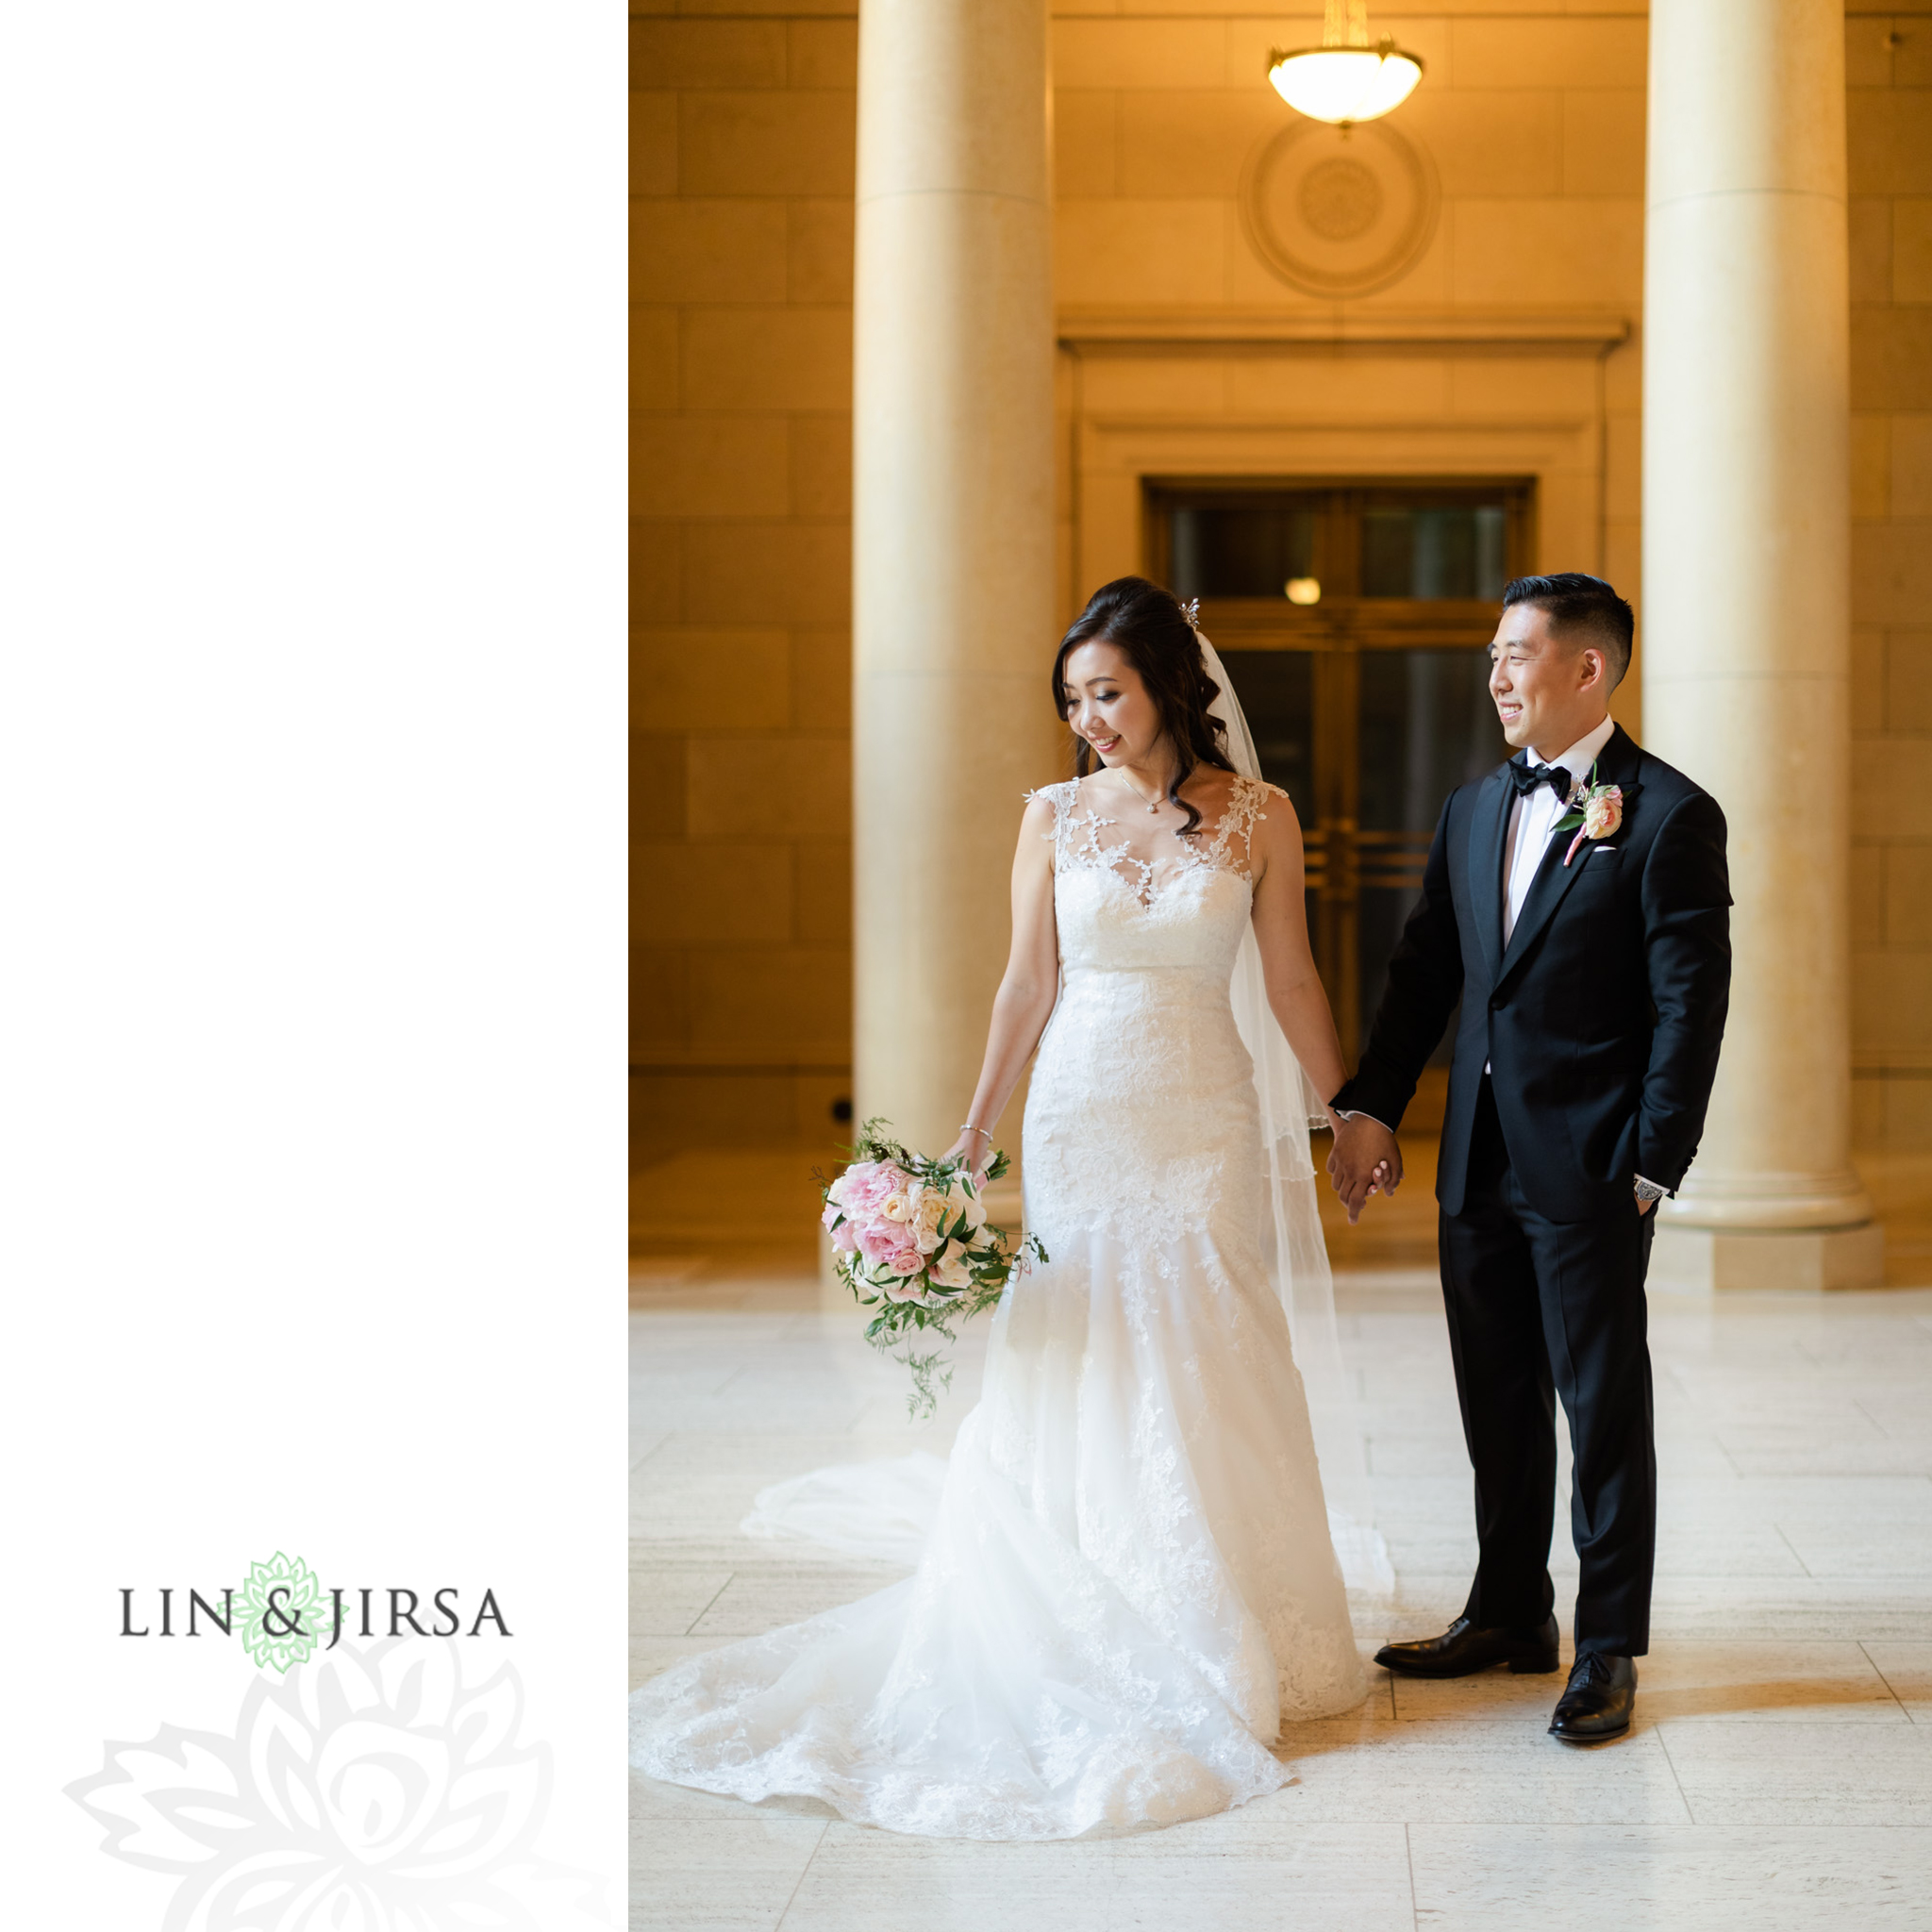 23 Bently Reserve San Francisco Destination Wedding Photographer